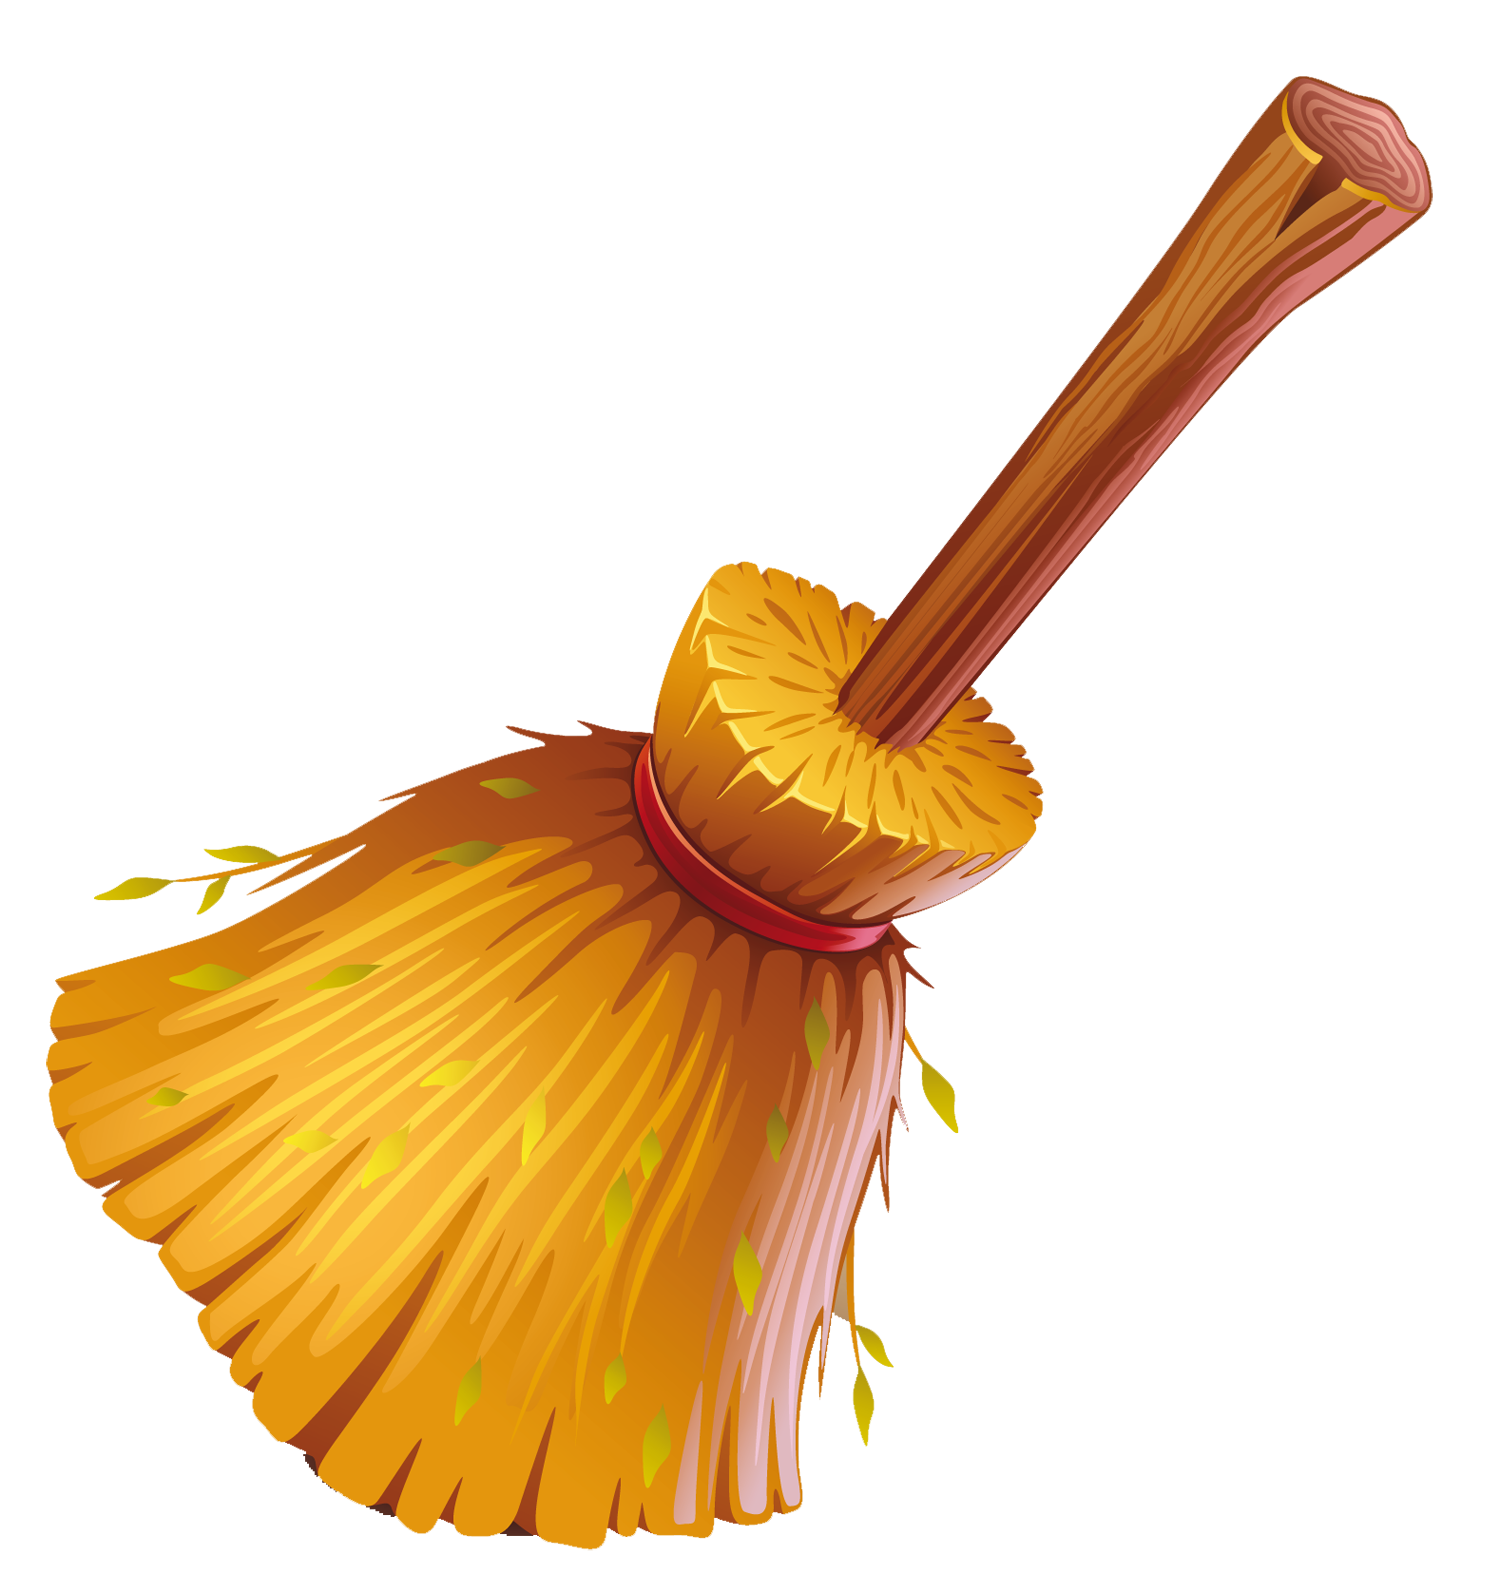 Broom clipart. Golden ner tamid goldenbroomclipart